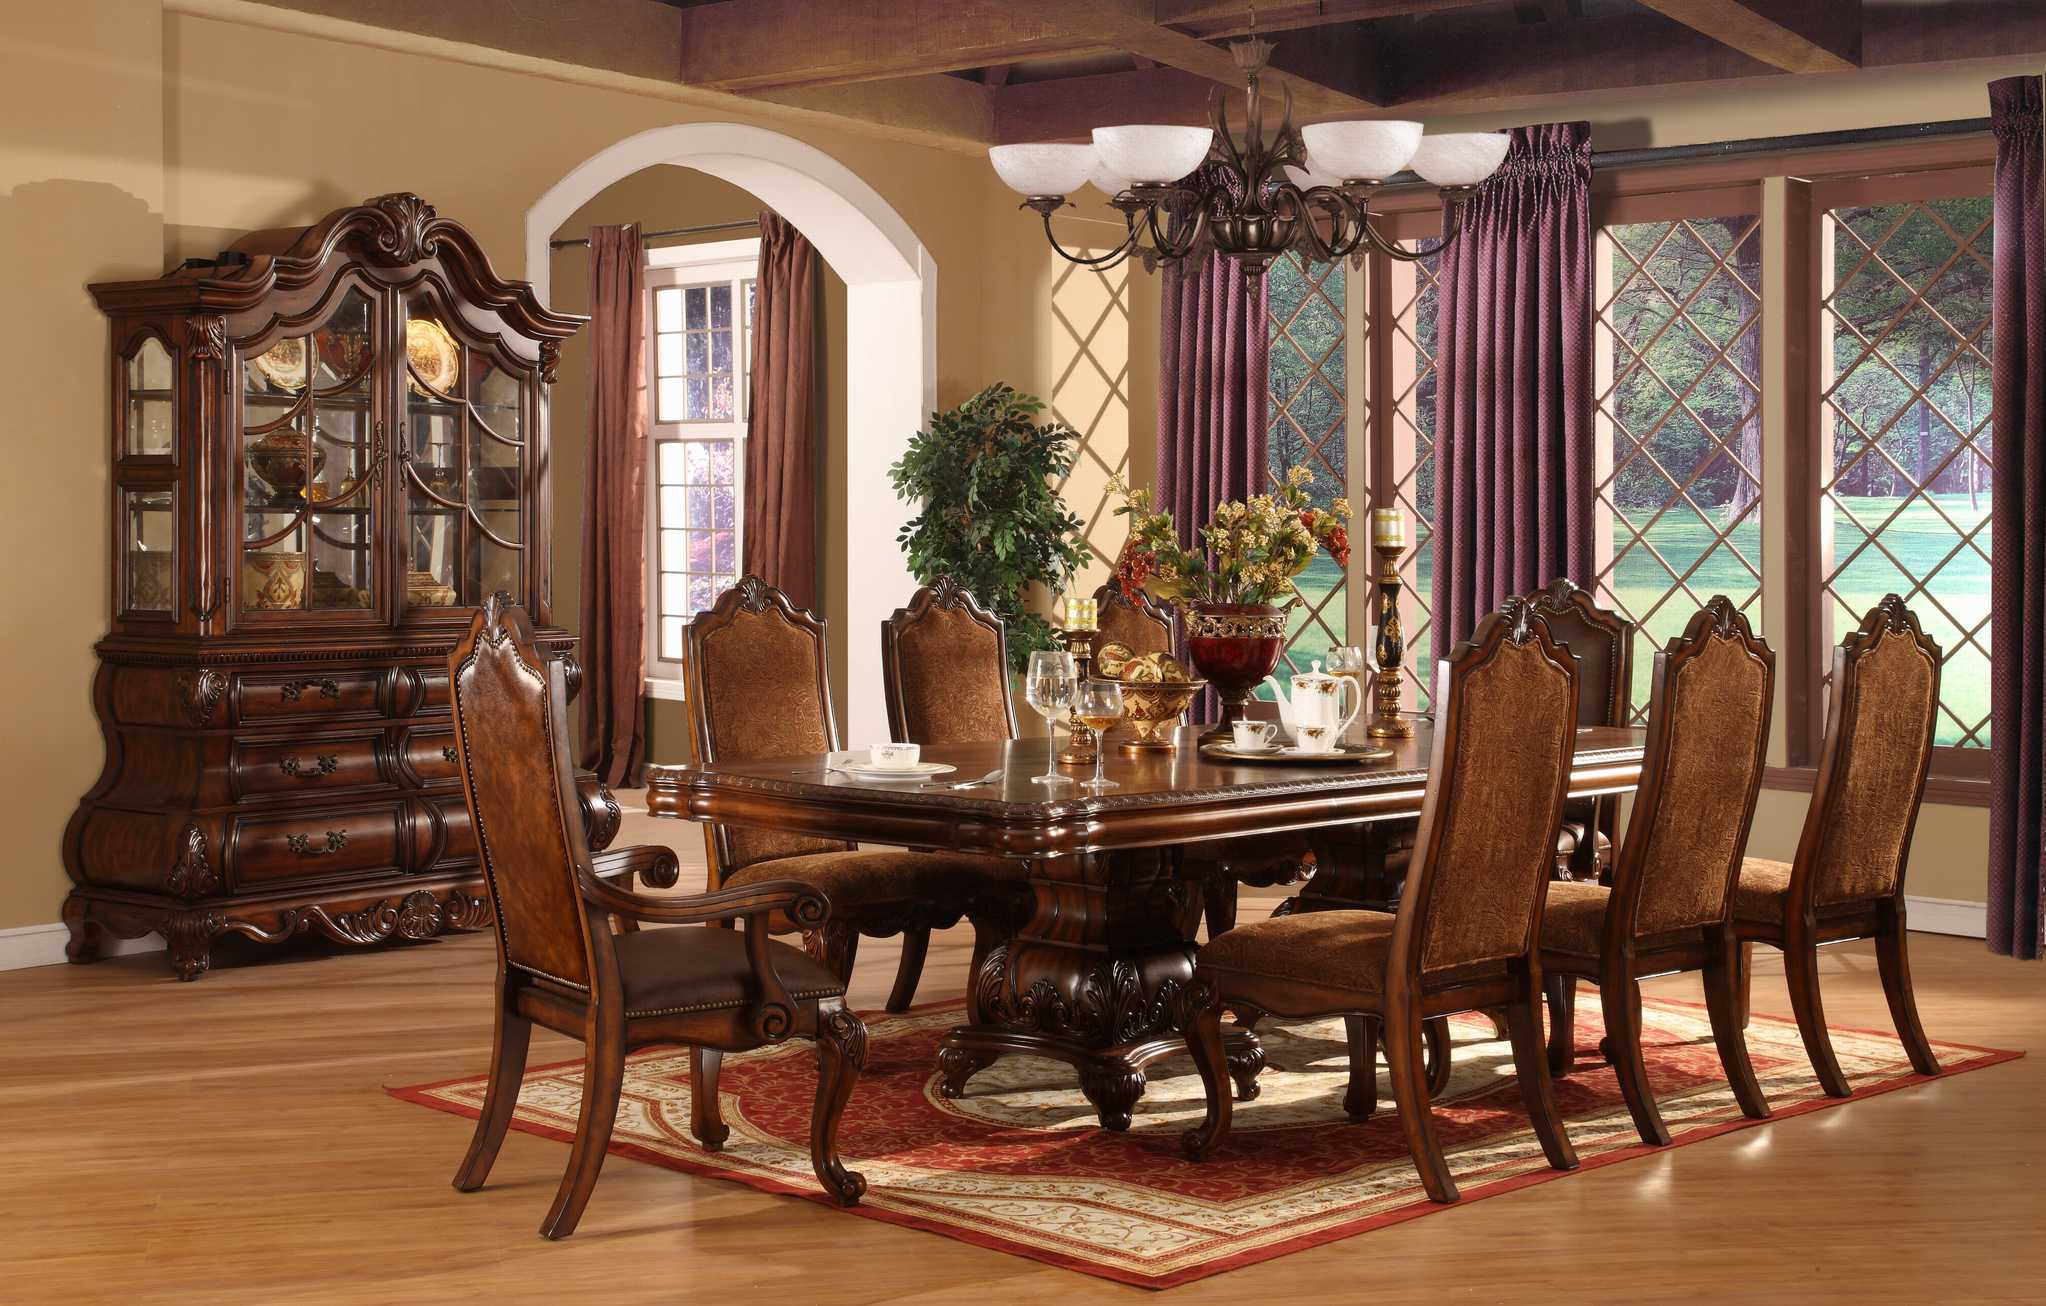 Amazing Formal Dining Room Sets With Buffet And Ceiling Light For Modern